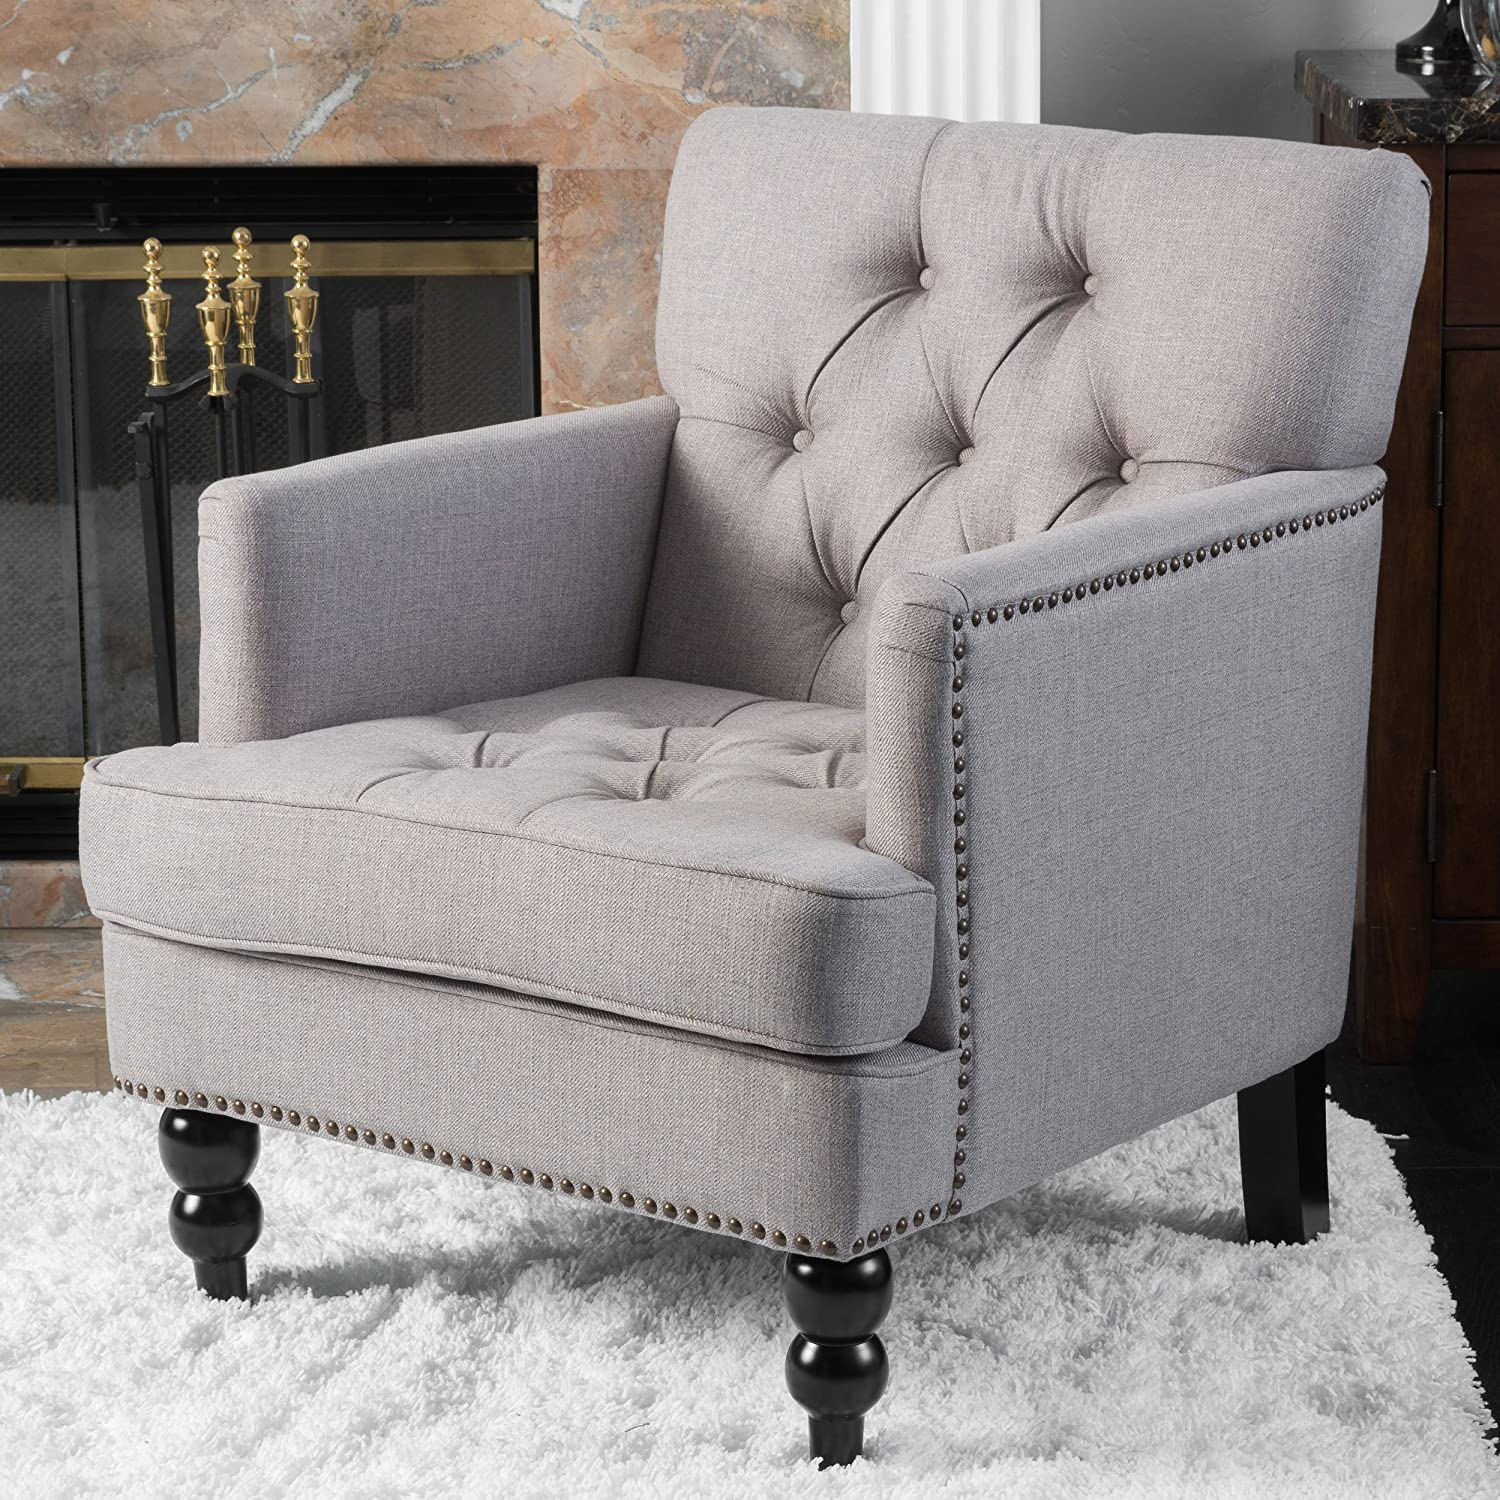 Christopher Knight Home 296470 Medford Classic Tufted Fabric Arm Chair, Pewter